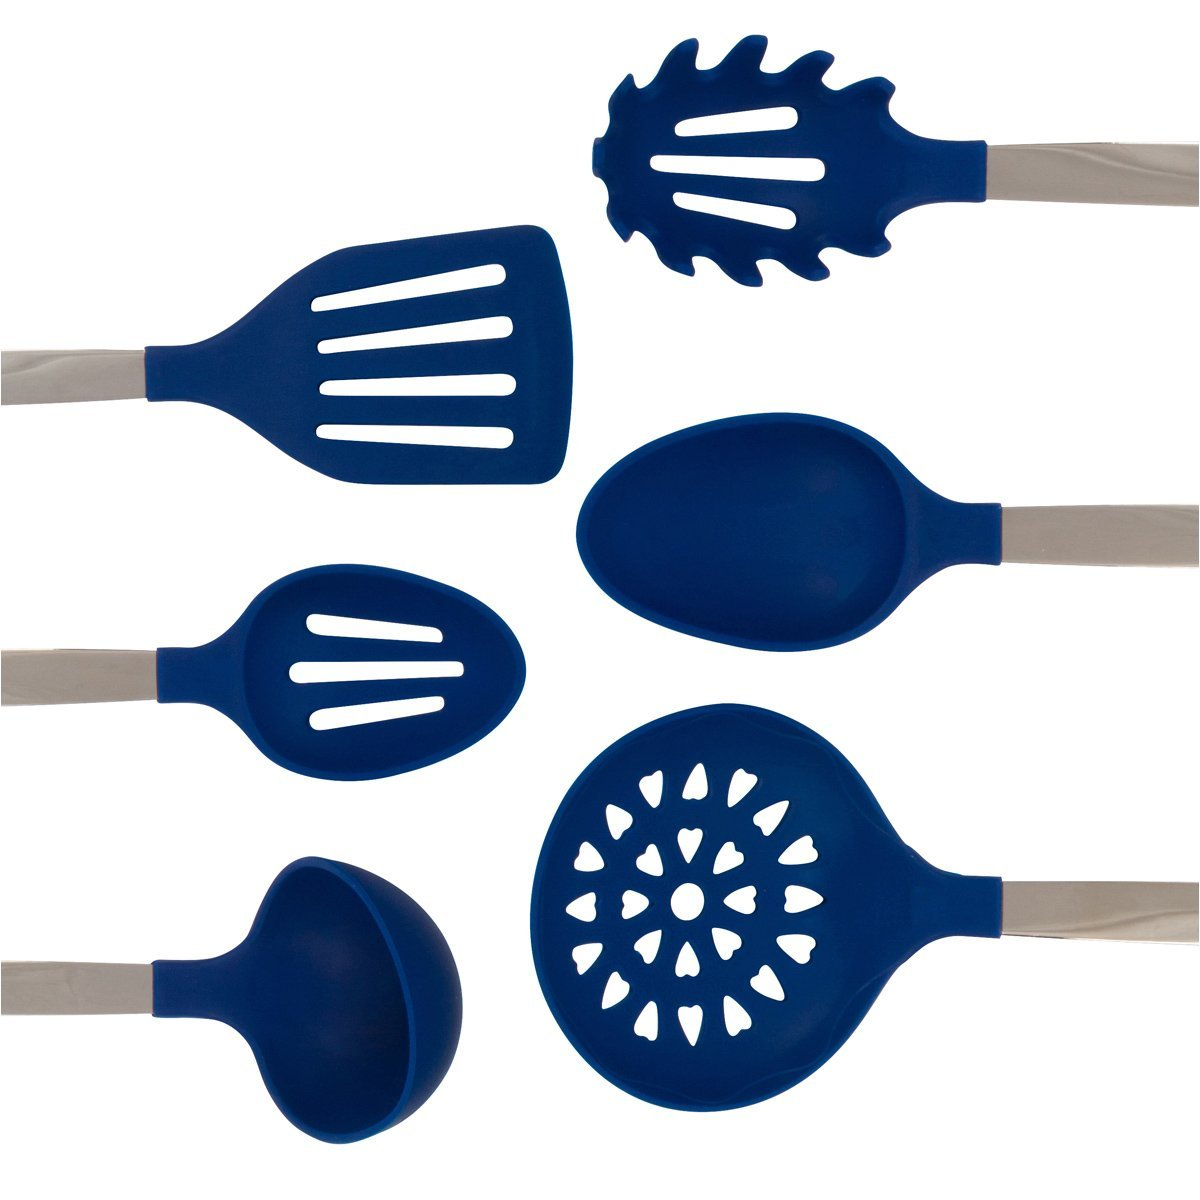 Culinary Couture Stainless Steel And Silicone Cooking Utensil Set With Ebook Blue